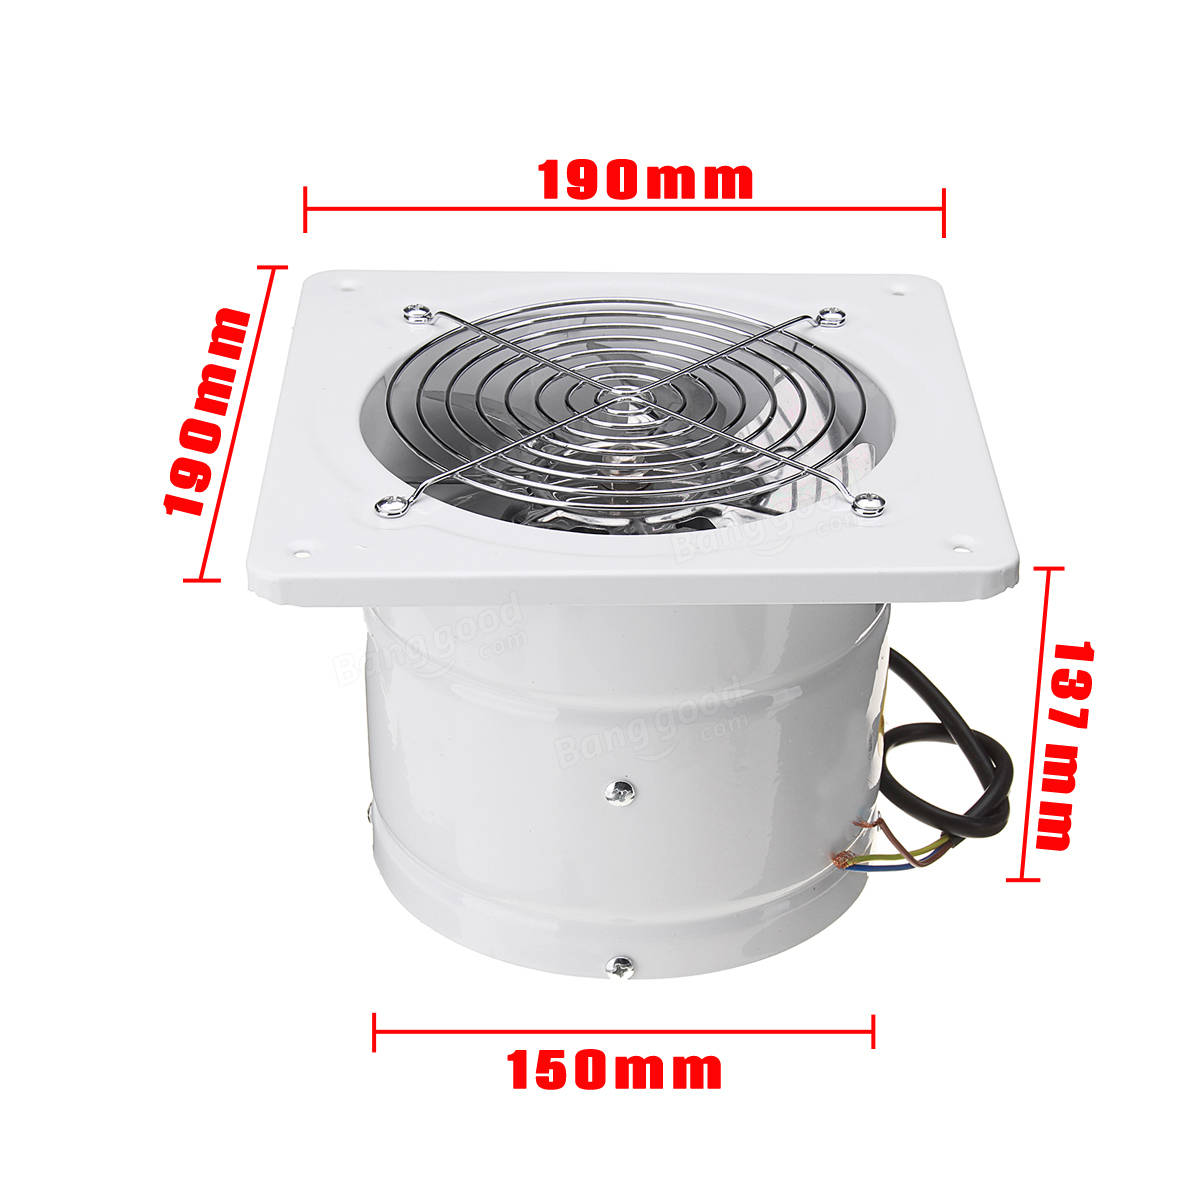 6 Duct Fan Extractor : Original inch w inline duct booster fan extractor